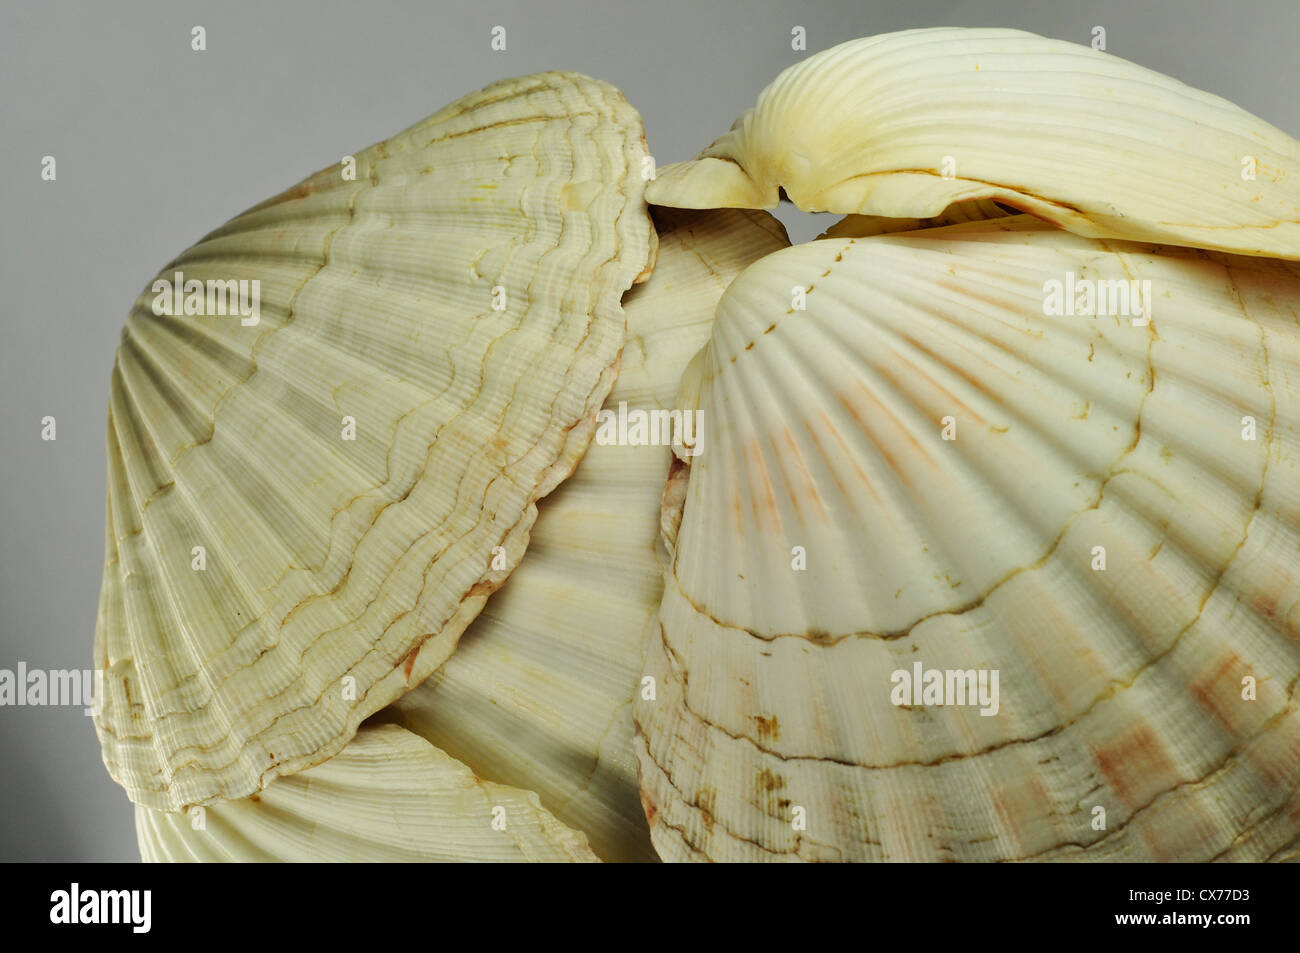 Scallop Shells, Close-up - Stock Image